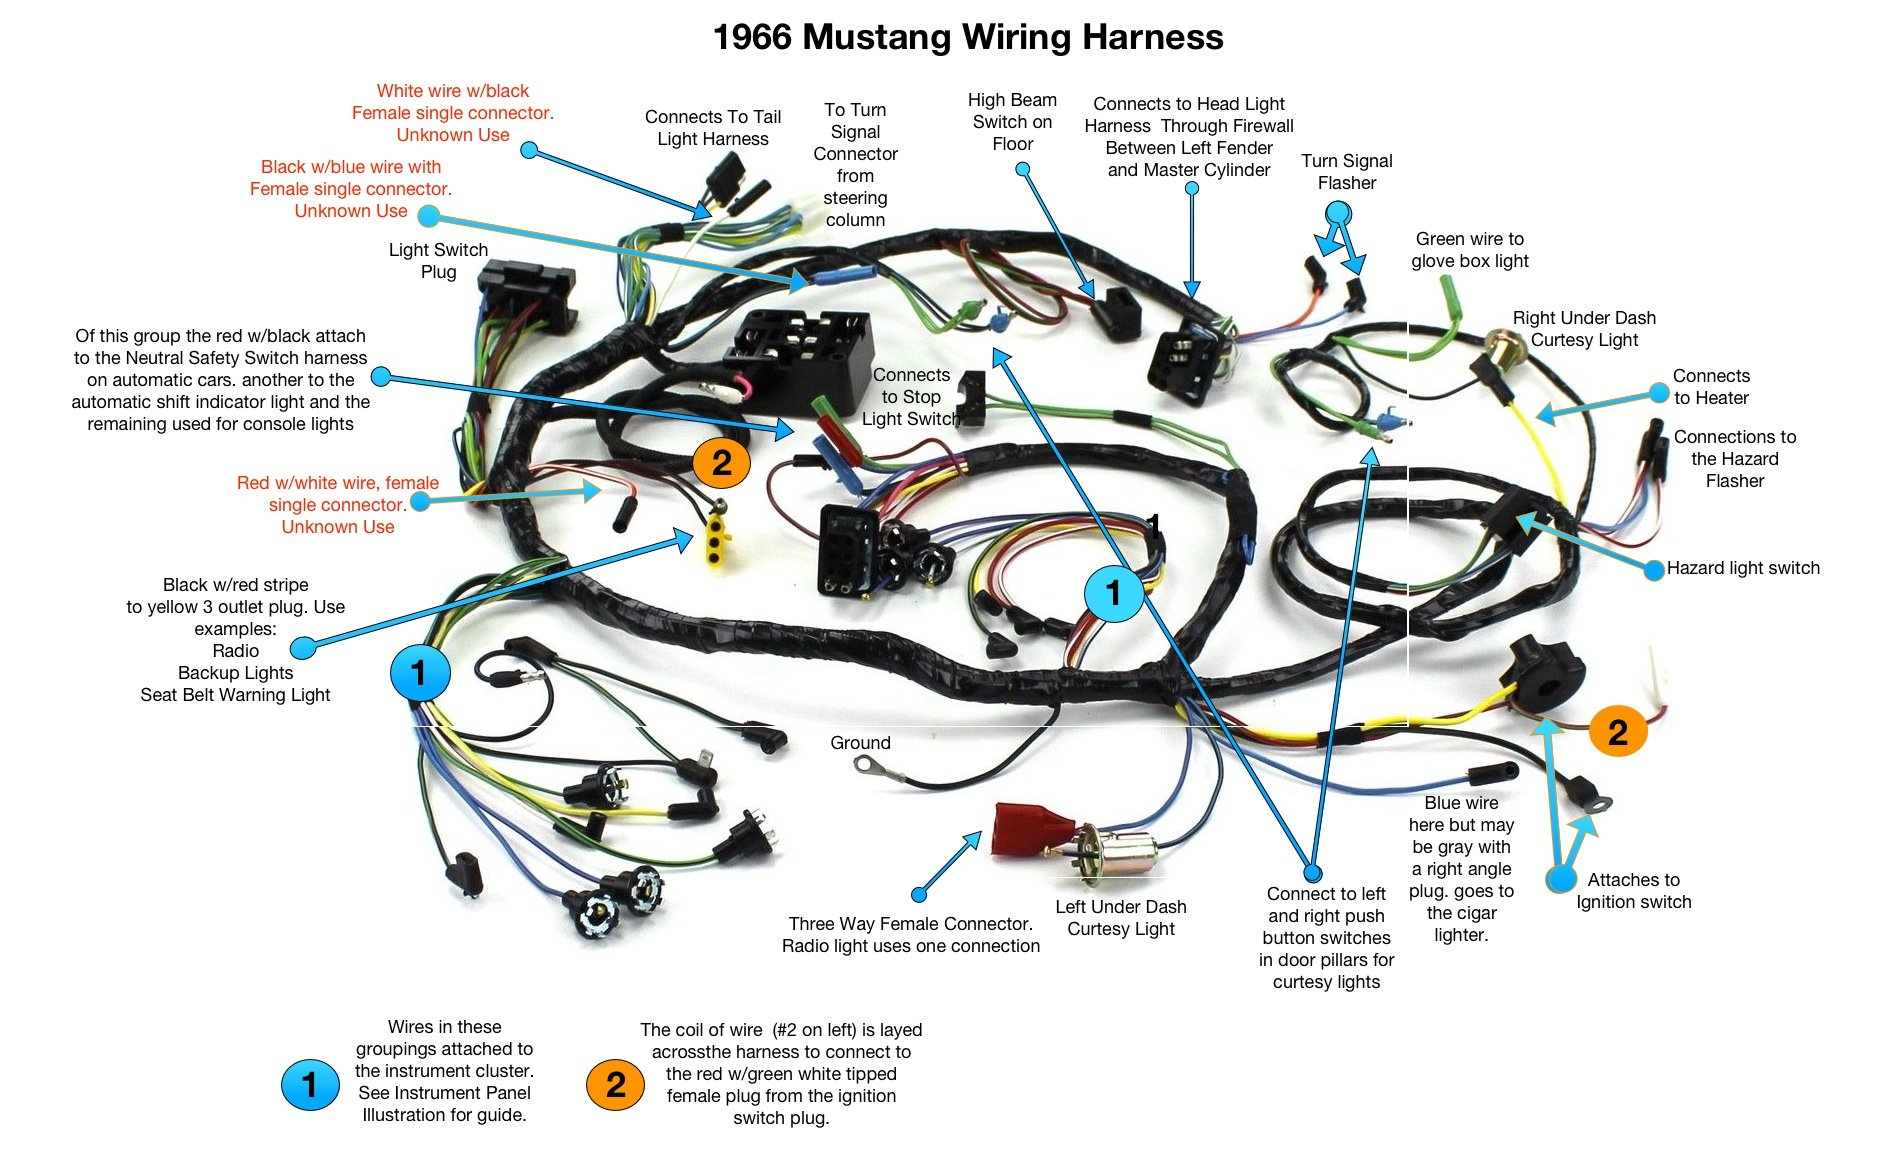 1968 ford mustang wiring harness wiring diagram and hernes 1964 mustang wiring harness auto diagram schematic